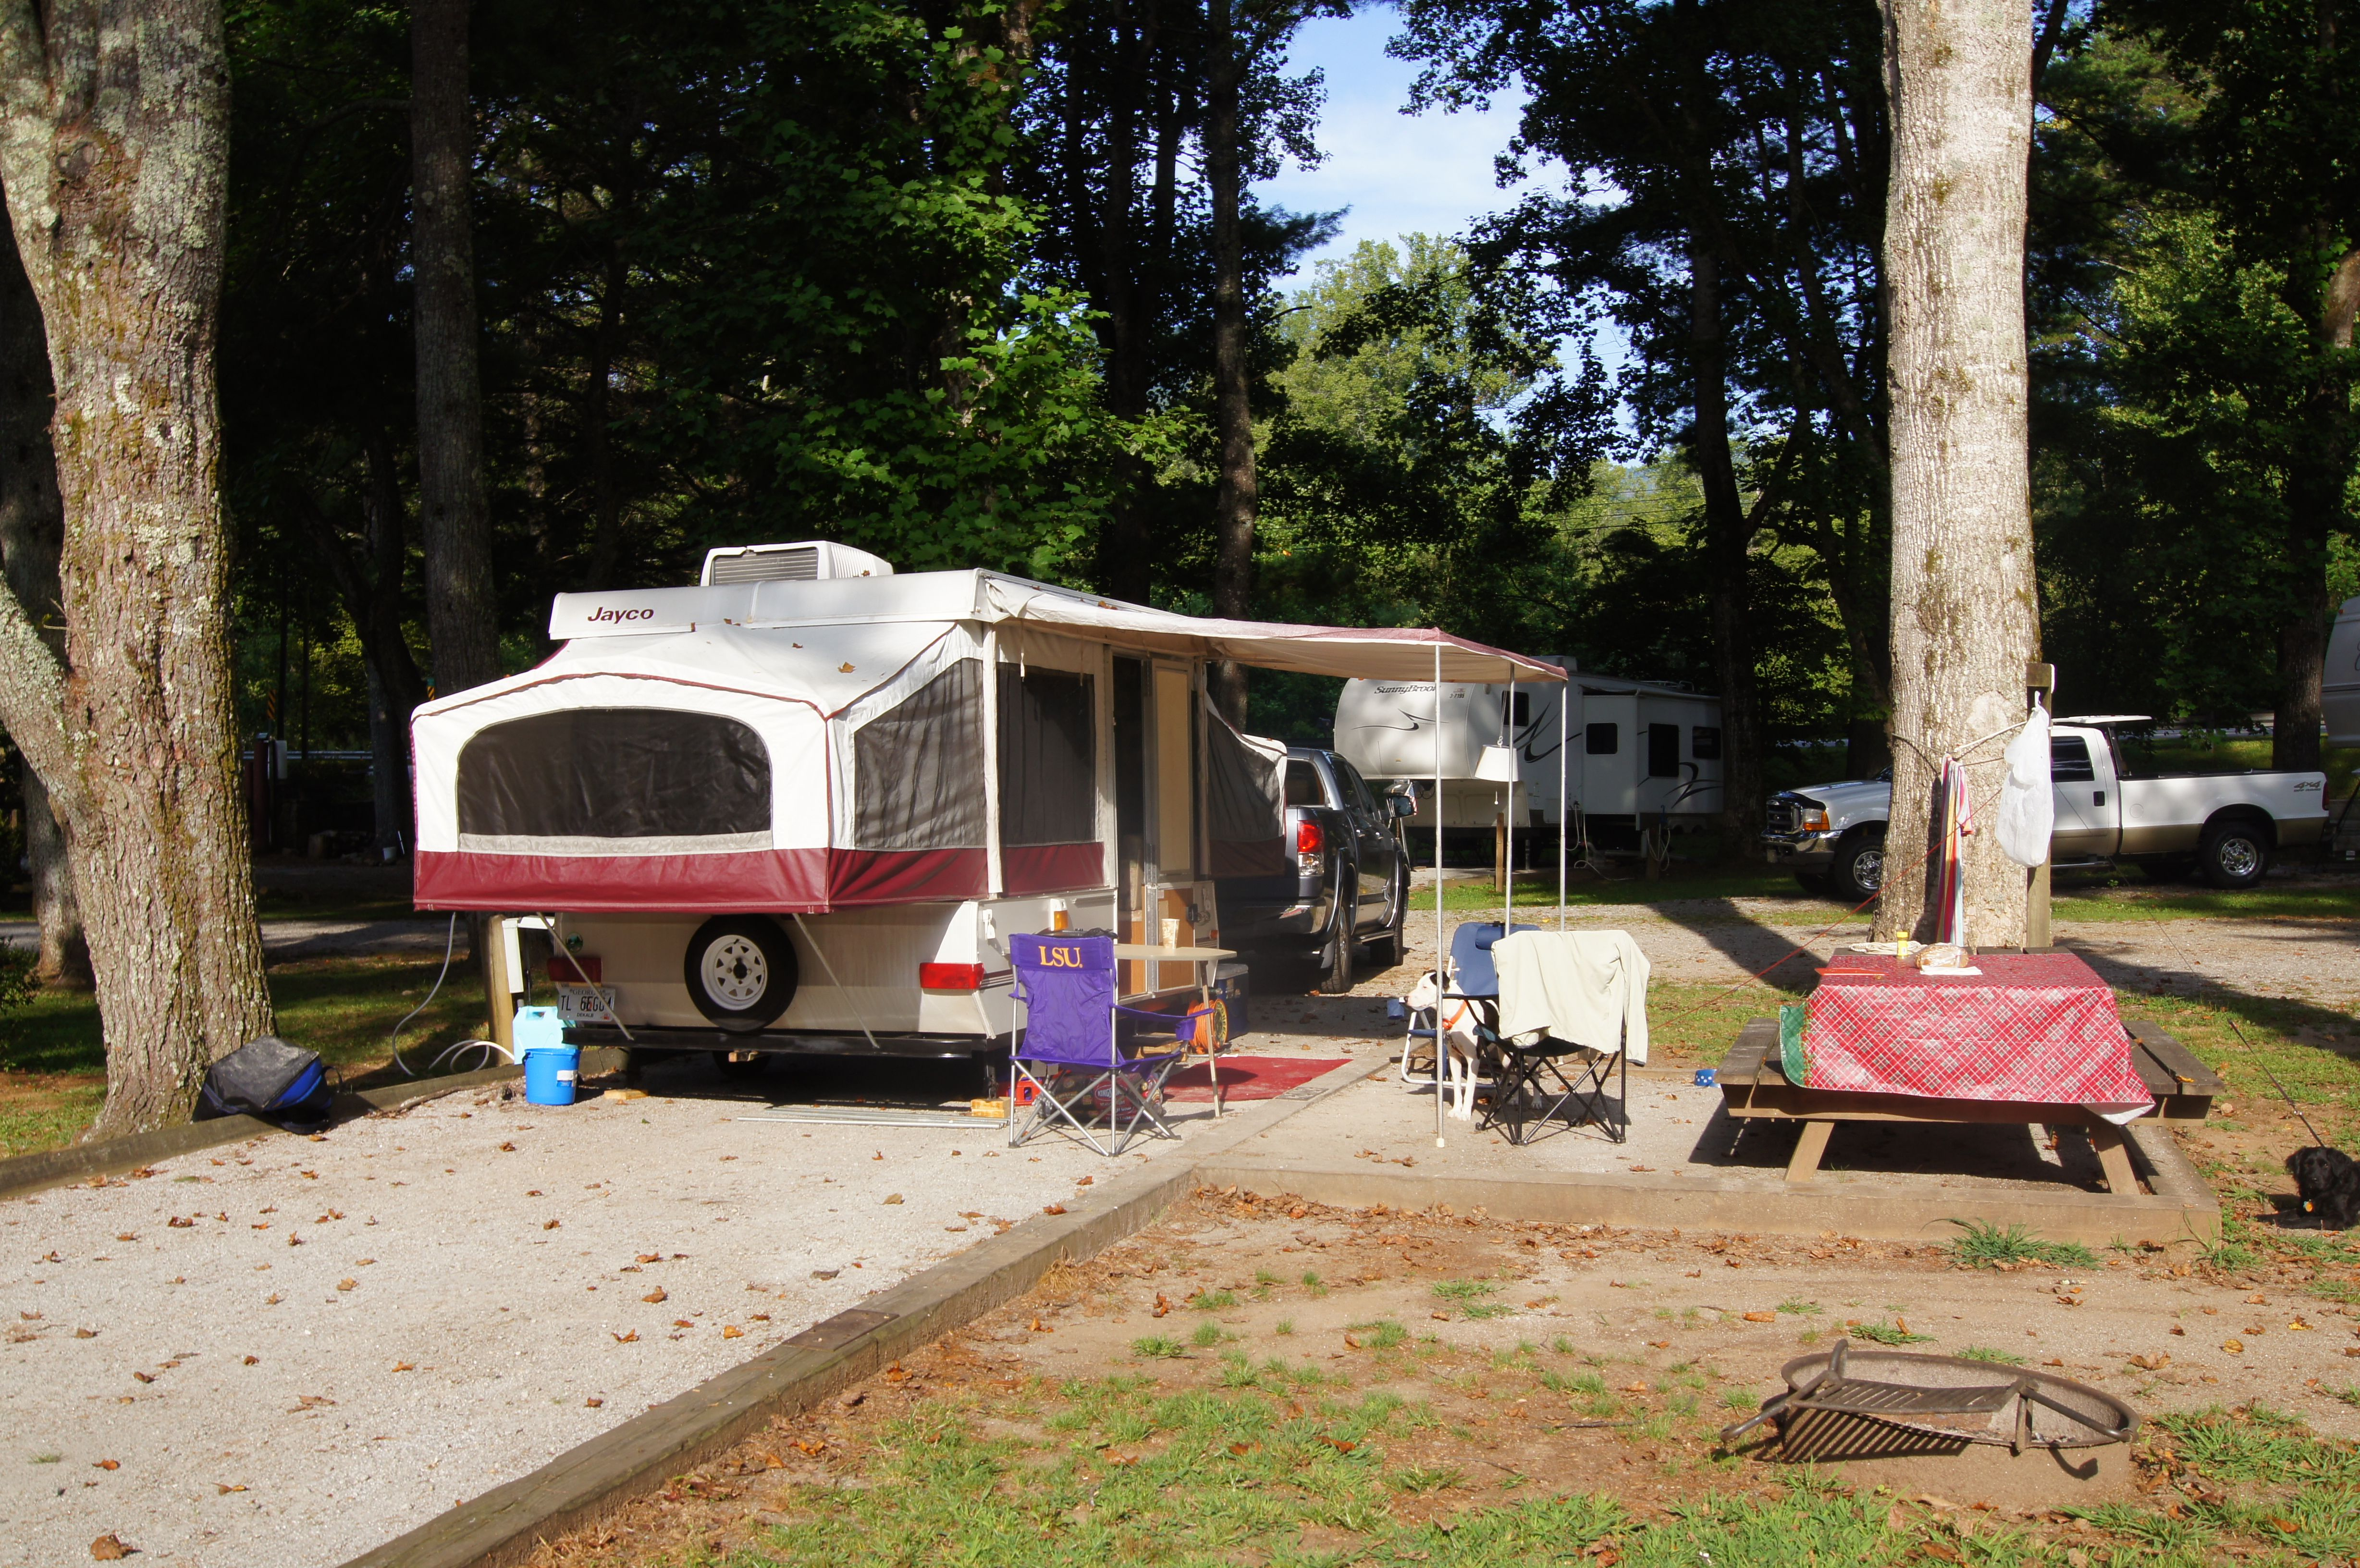 Moccasin Creek State Park Ga Our First Trip With The Pop Up Camper